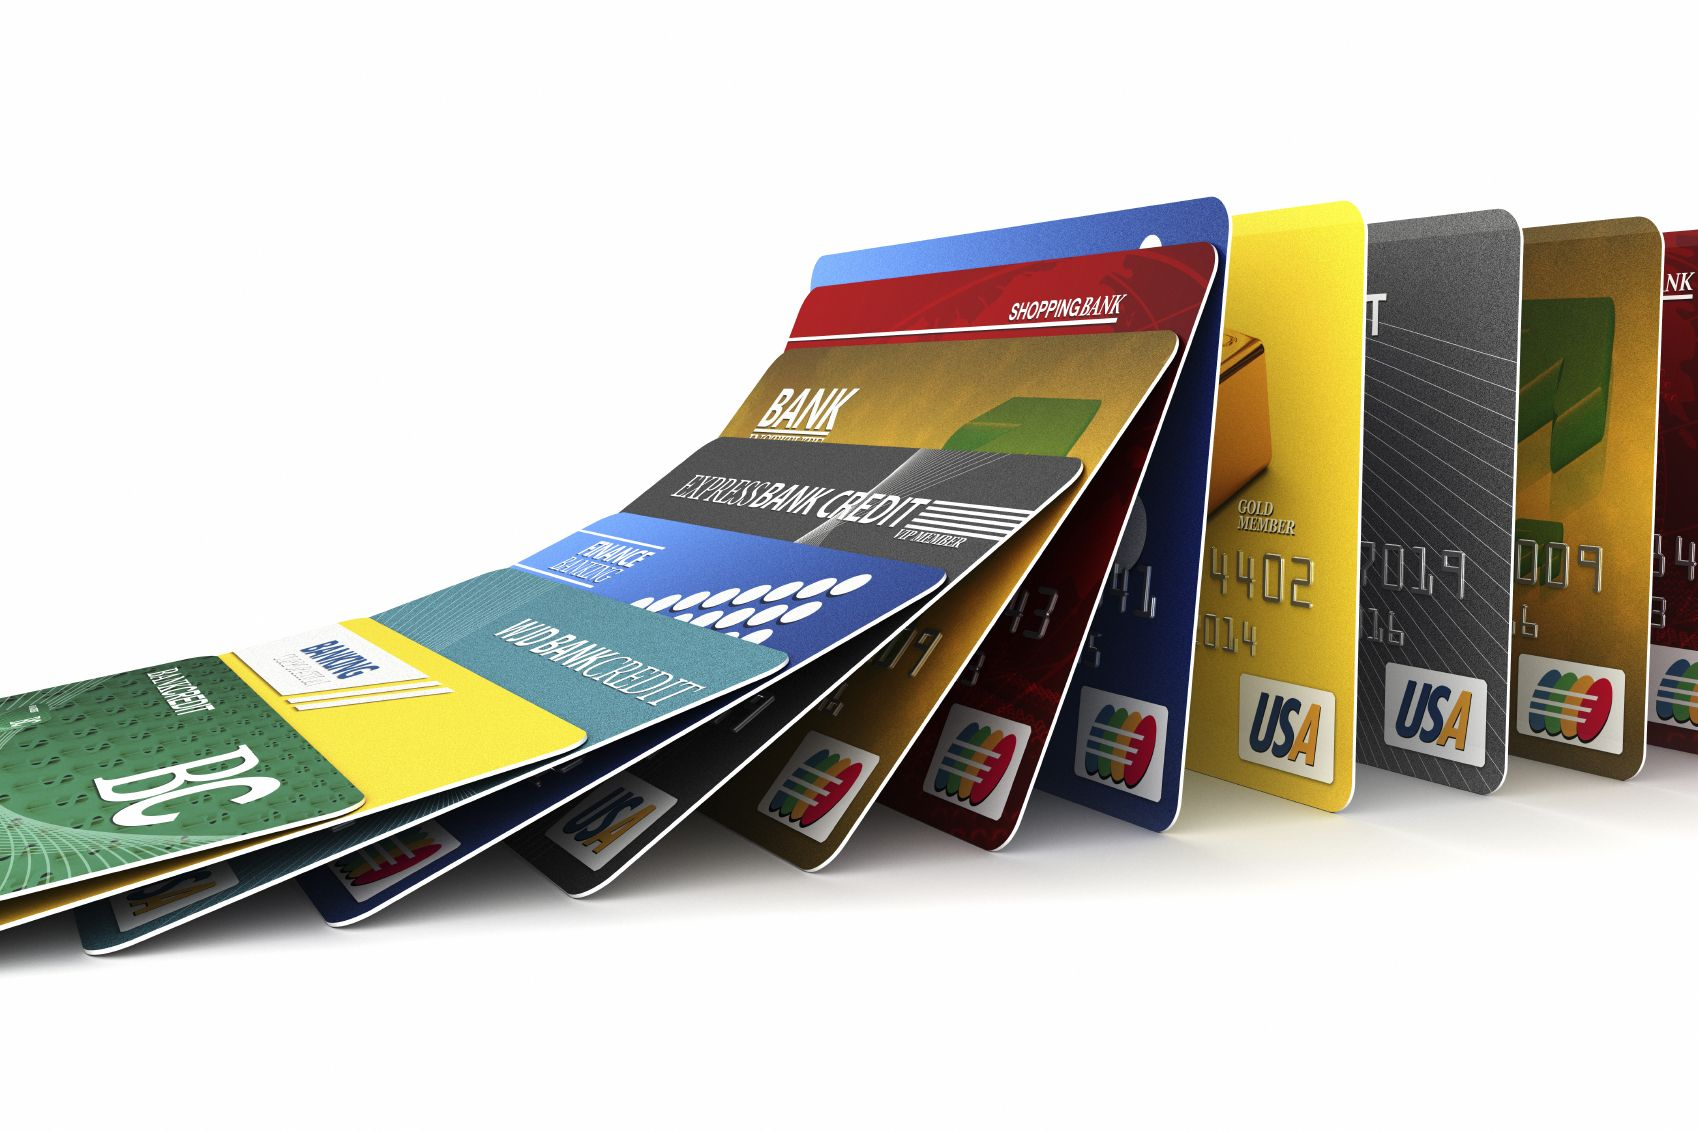 While The Ads May Promise That You Can Get Instantly Approved That Does Not Mean You Can Immediately Use Your Credit Card The Nex Kartu Kredit Perbankan Kartu